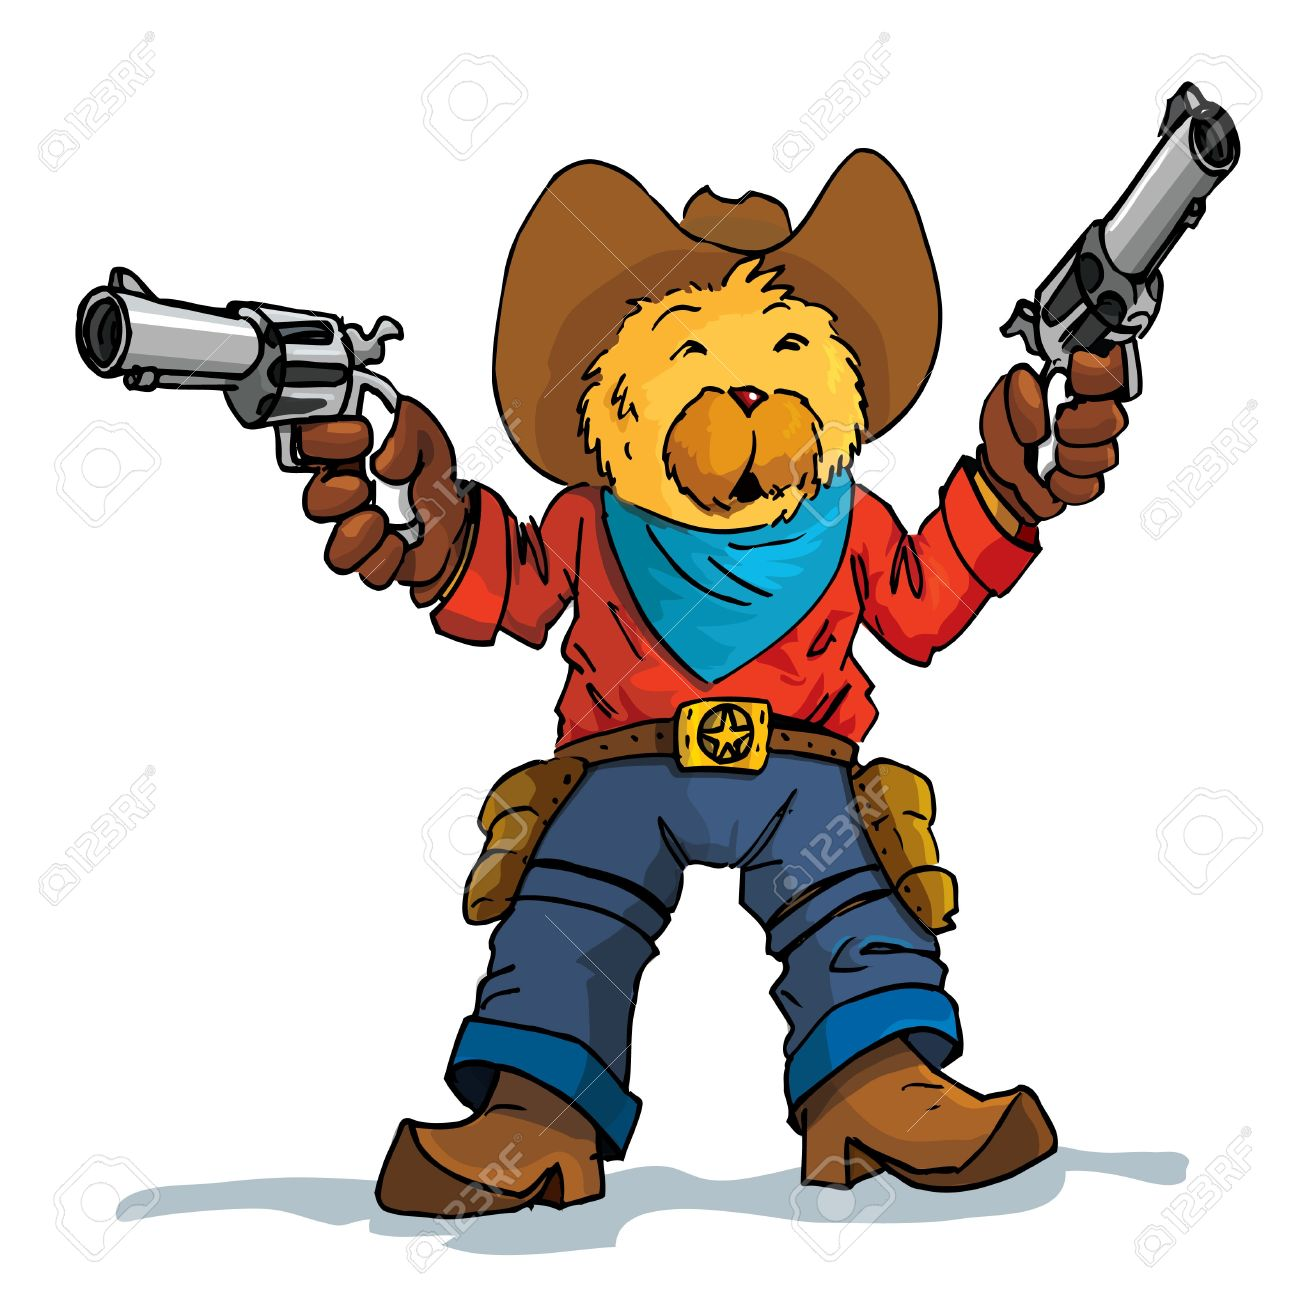 Cartoon of a bear cowboy with guns drawn. Isolated on white Stock Vector - 10390391